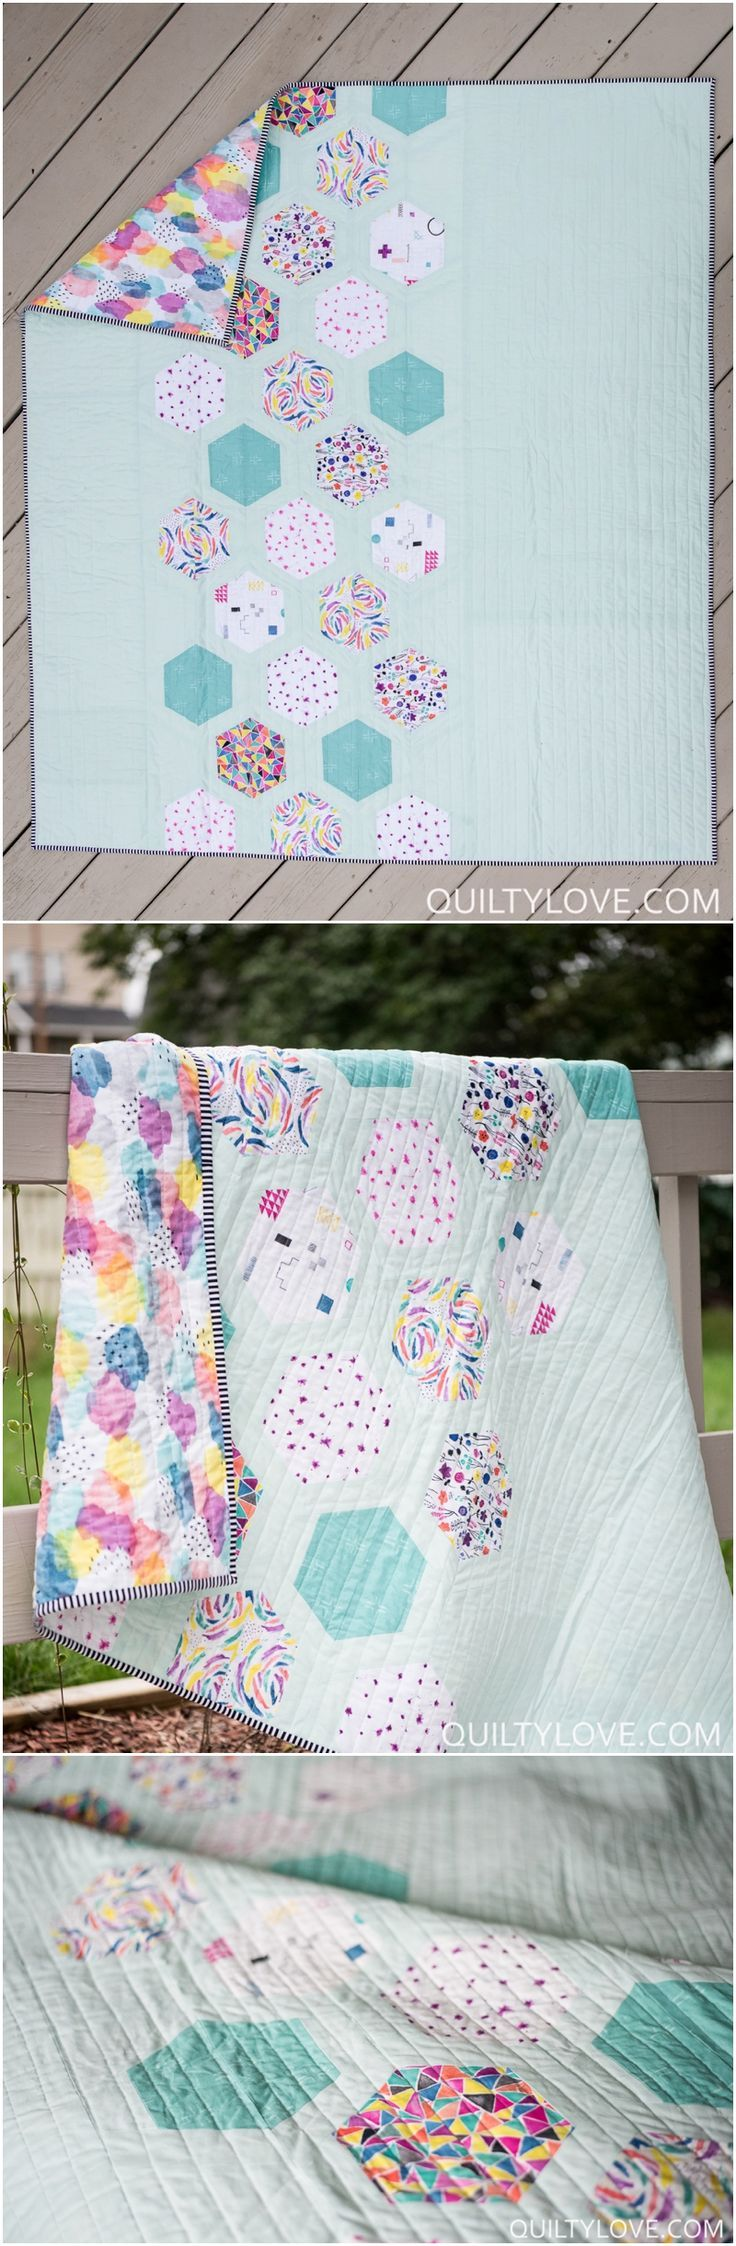 Hexie Framed Quilt Pattern by Emily of Quiltylove.com. Modern hexie quilt using Brush Strokes fabric by Cloud 9 Fabrics.